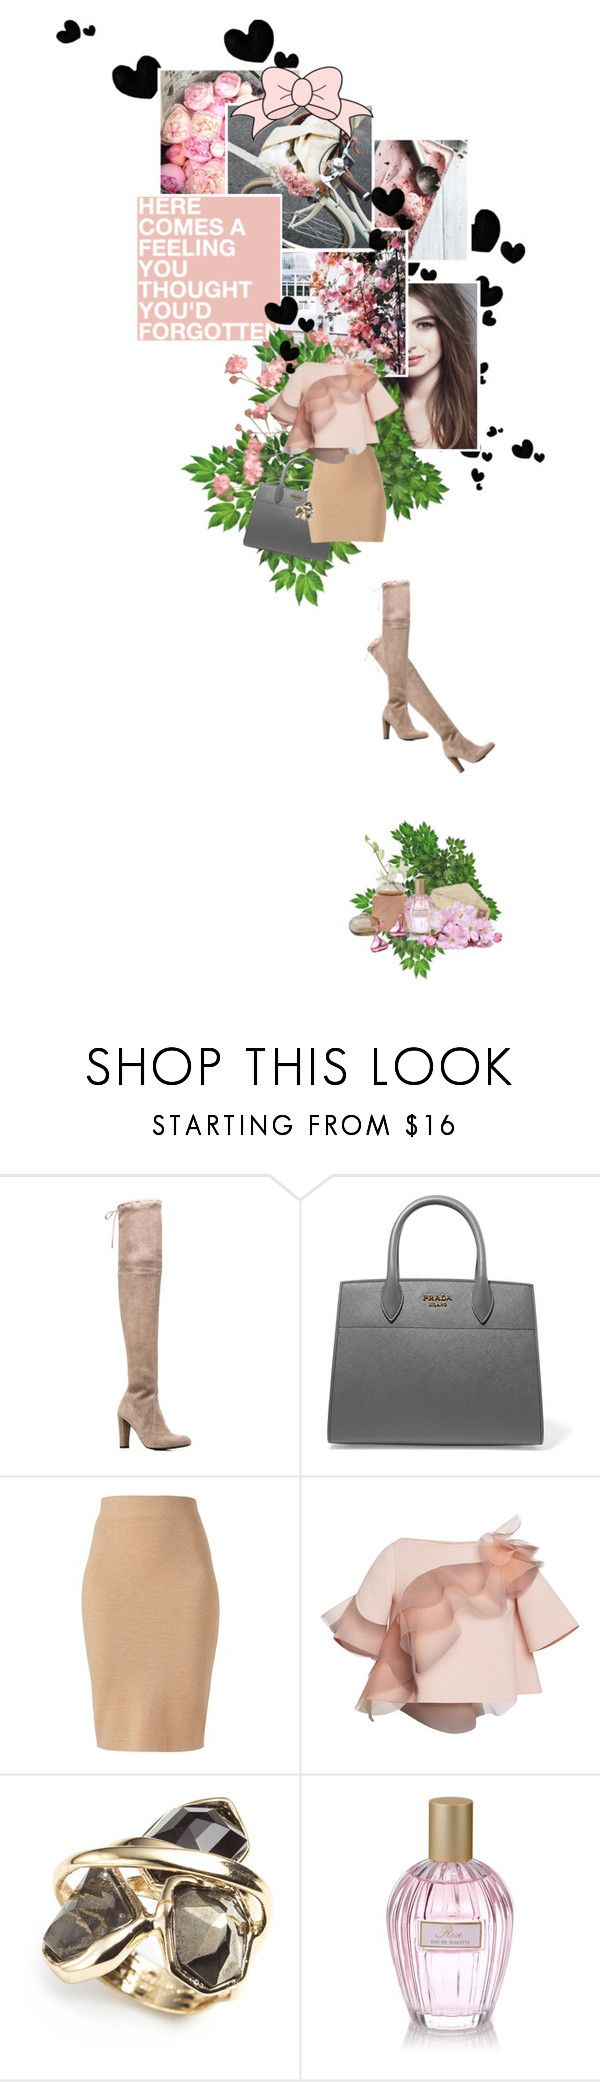 """""""#6 -Thigh high boots"""" by hoppsan ❤ liked on Polyvore featuring Prada, Stuart Weitzman, Winser London, Marc Jacobs, Alexis Bittar and Marks & Spencer"""